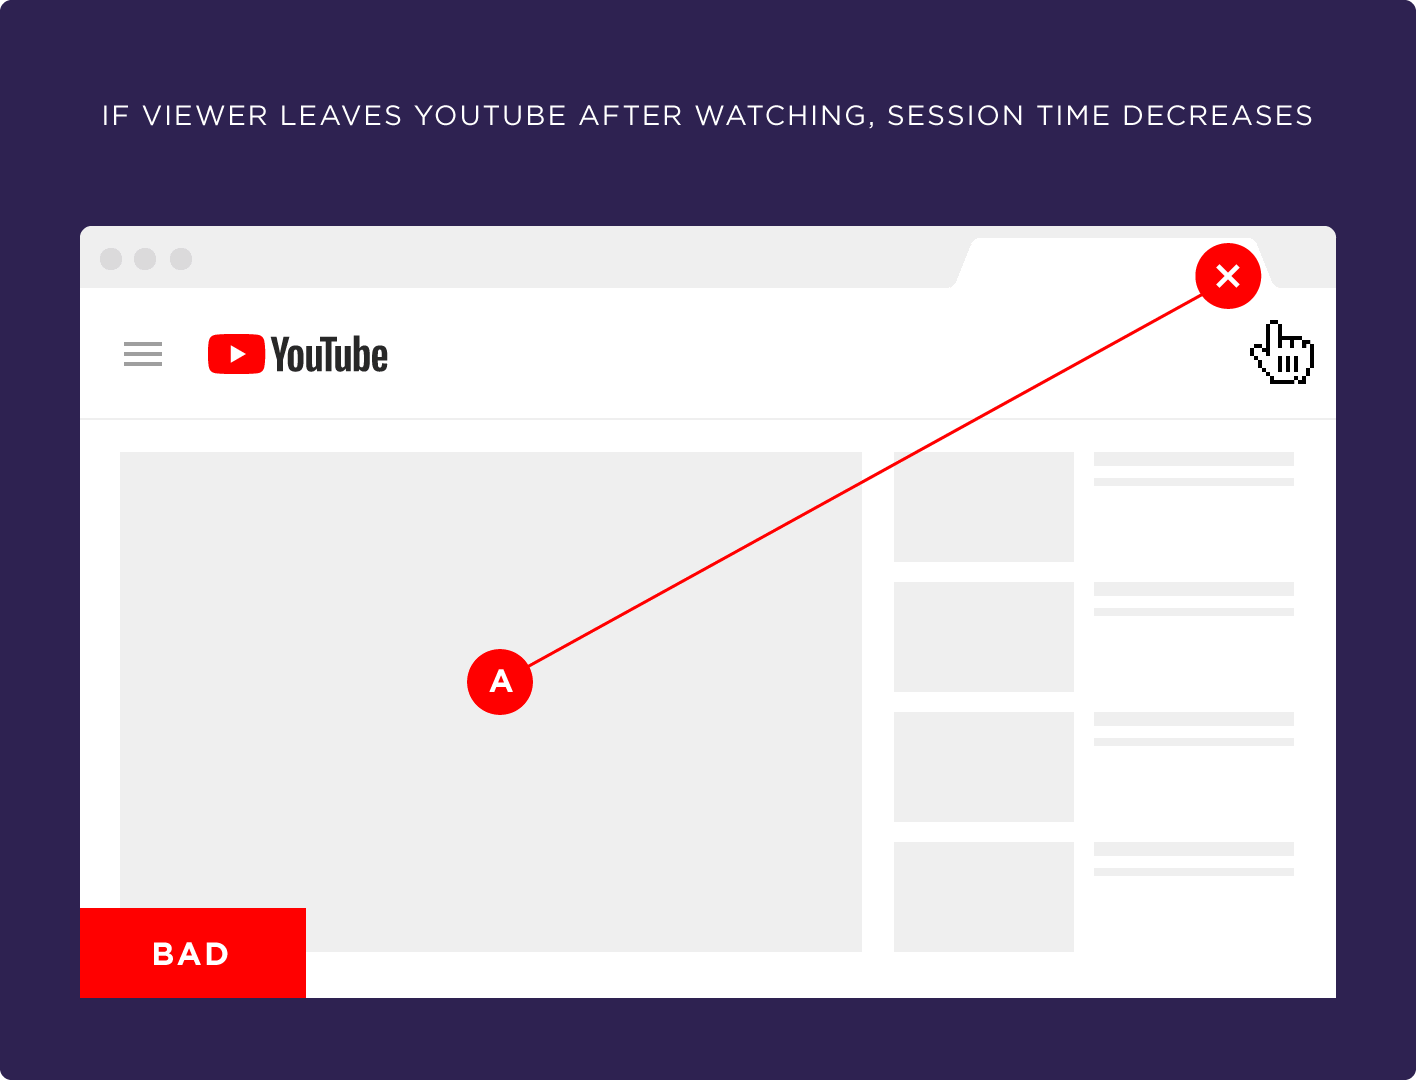 If viewer leaves YouTube after watching, session time decreases